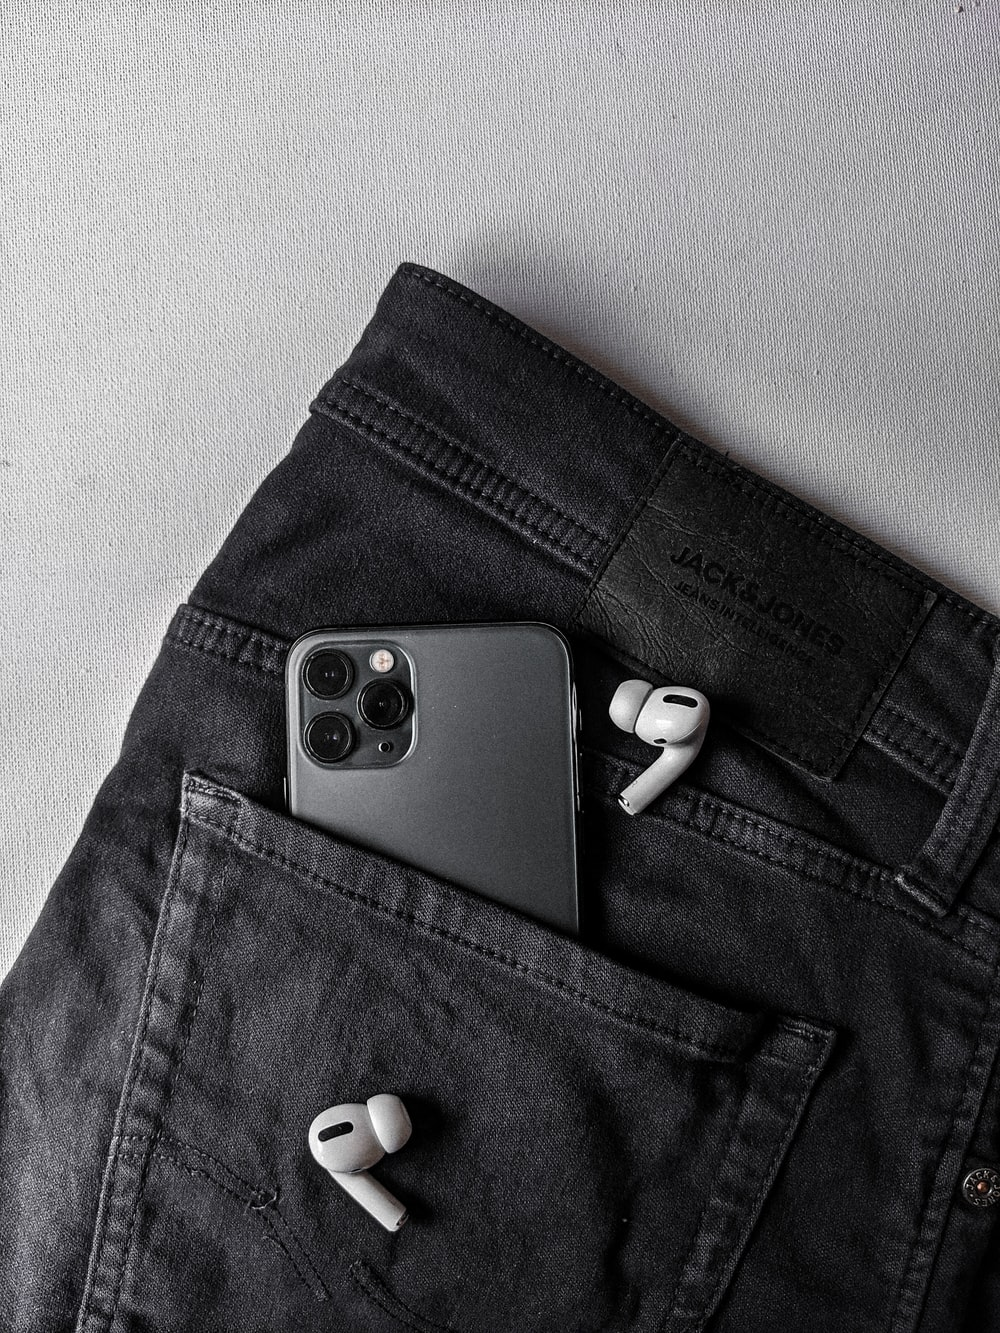 white and black game controller on blue denim jeans